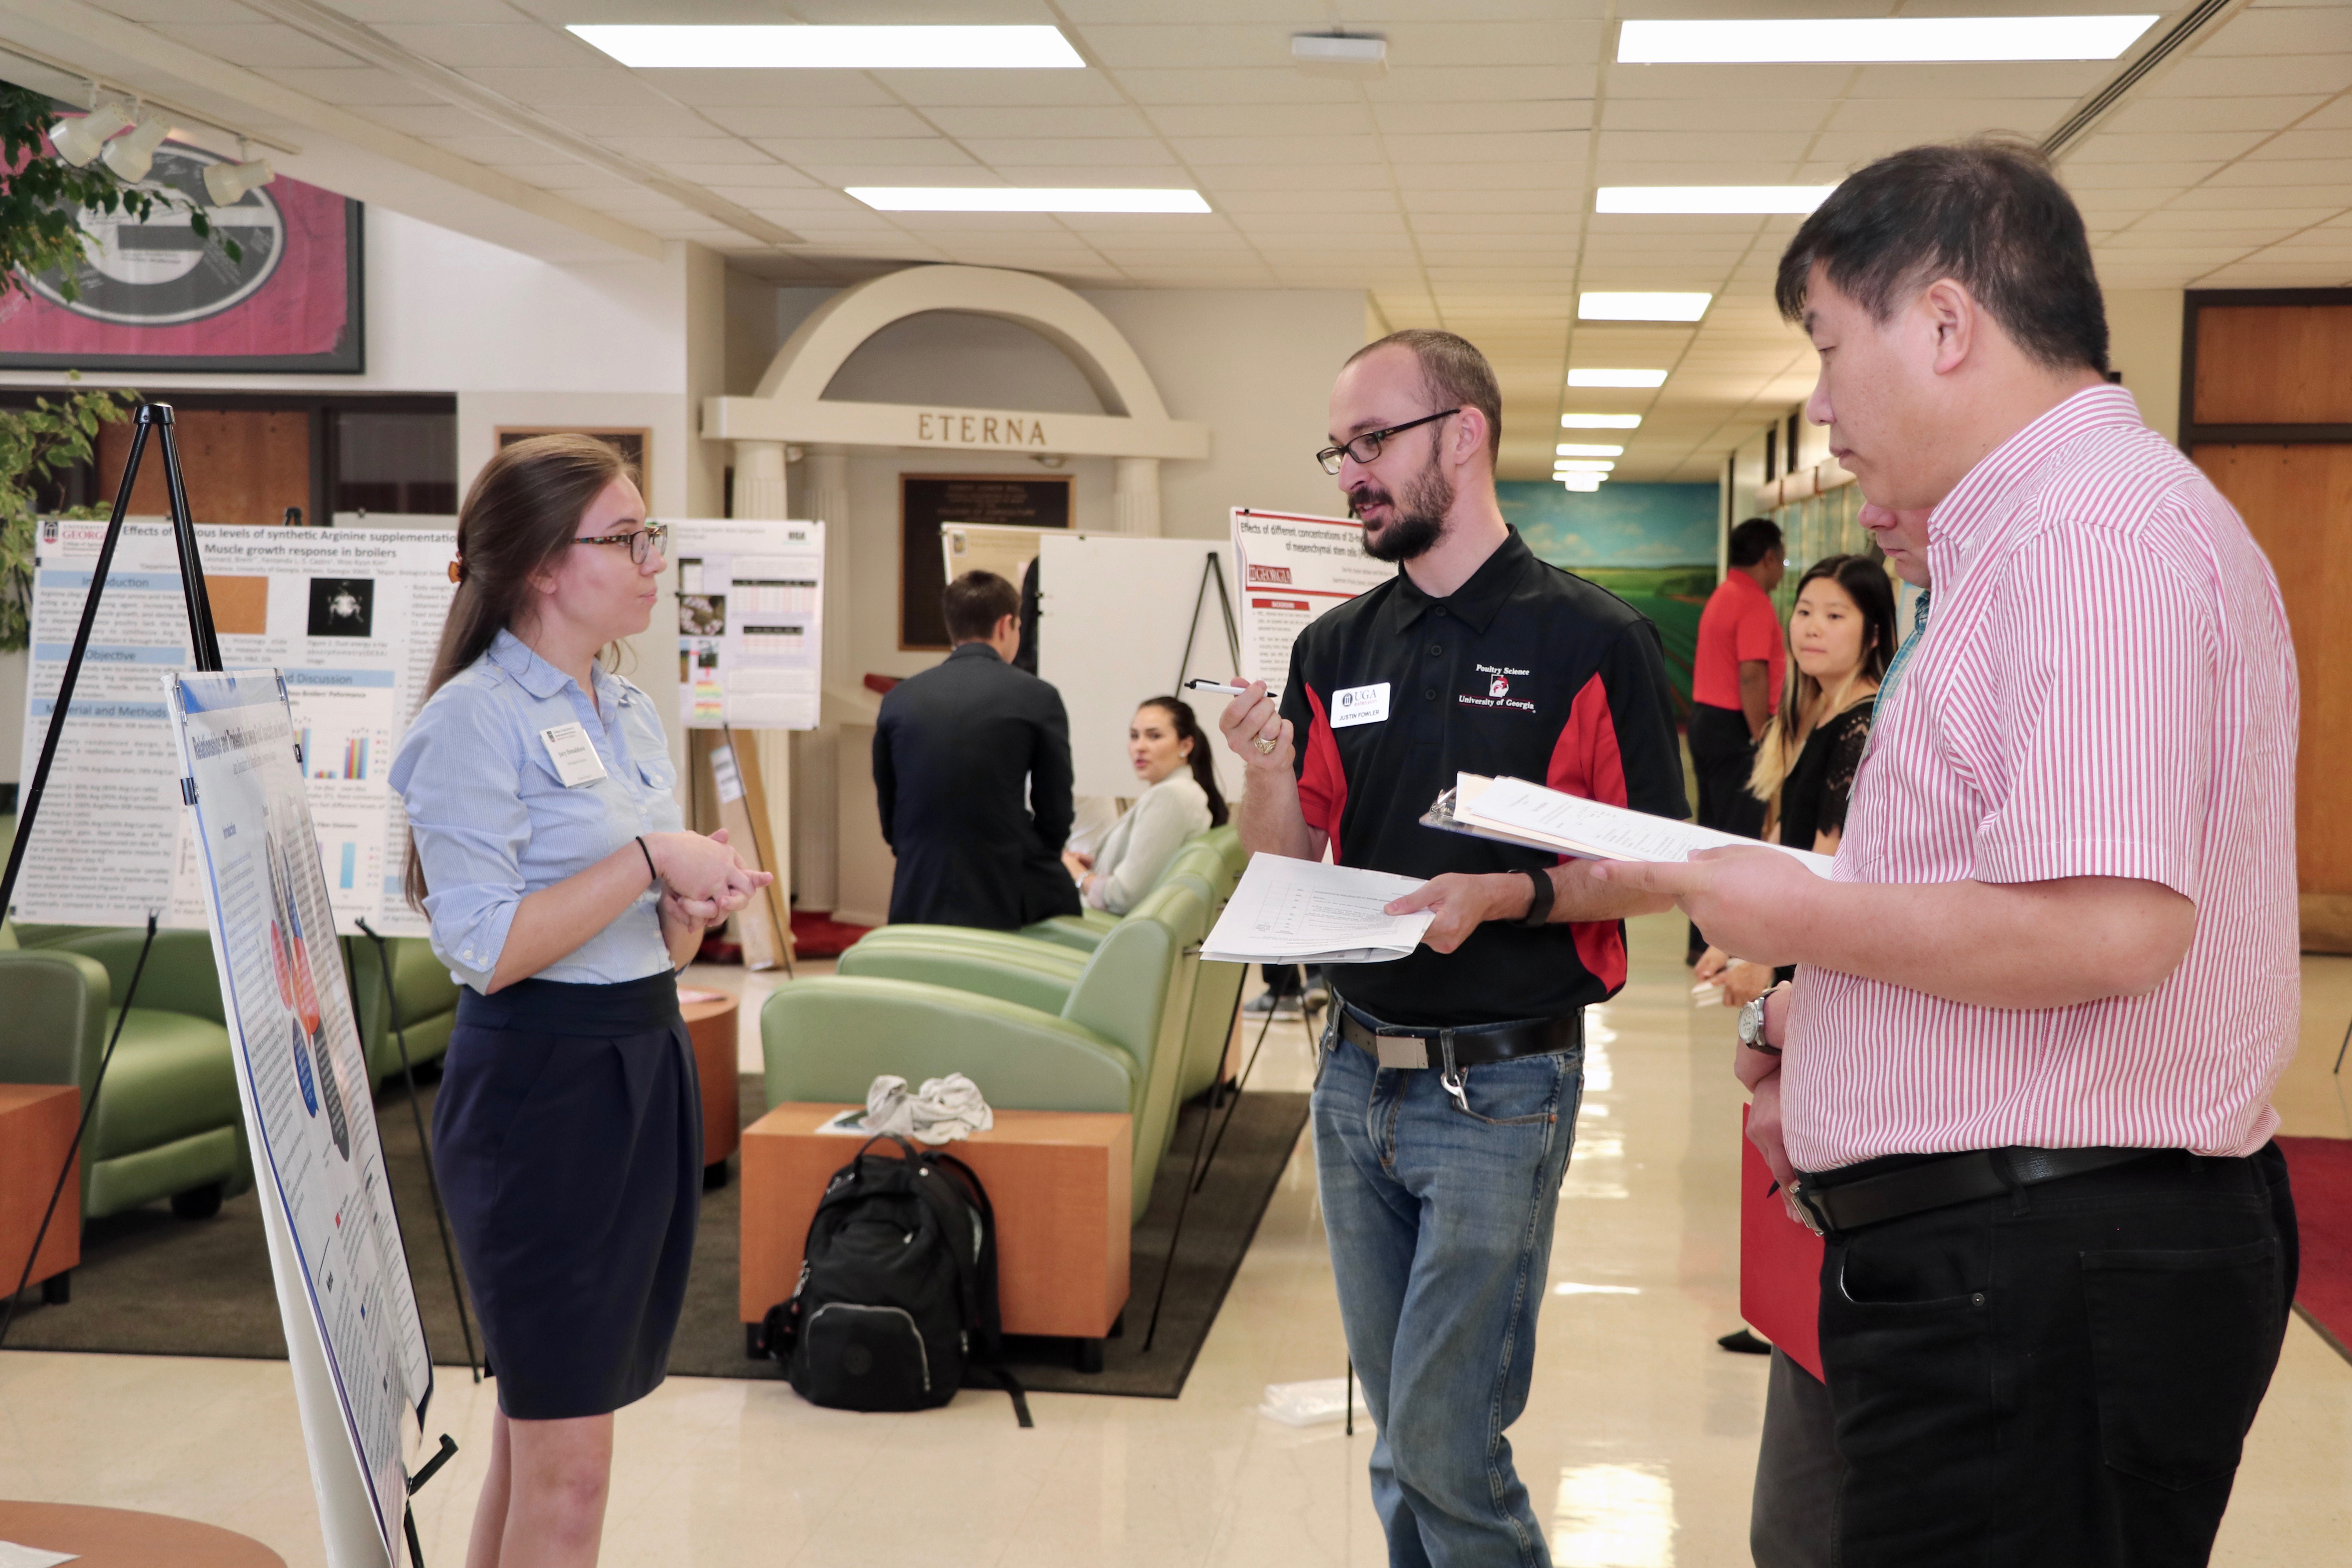 Jacy Donaldson, a senior studying biological science at the UGA College of Agricultural and Environmental Sciences, answers CAES faculty's questions about her research into the impact of medical costs on food insecurity at the CAES Undergraduate Research Symposium on April 12.